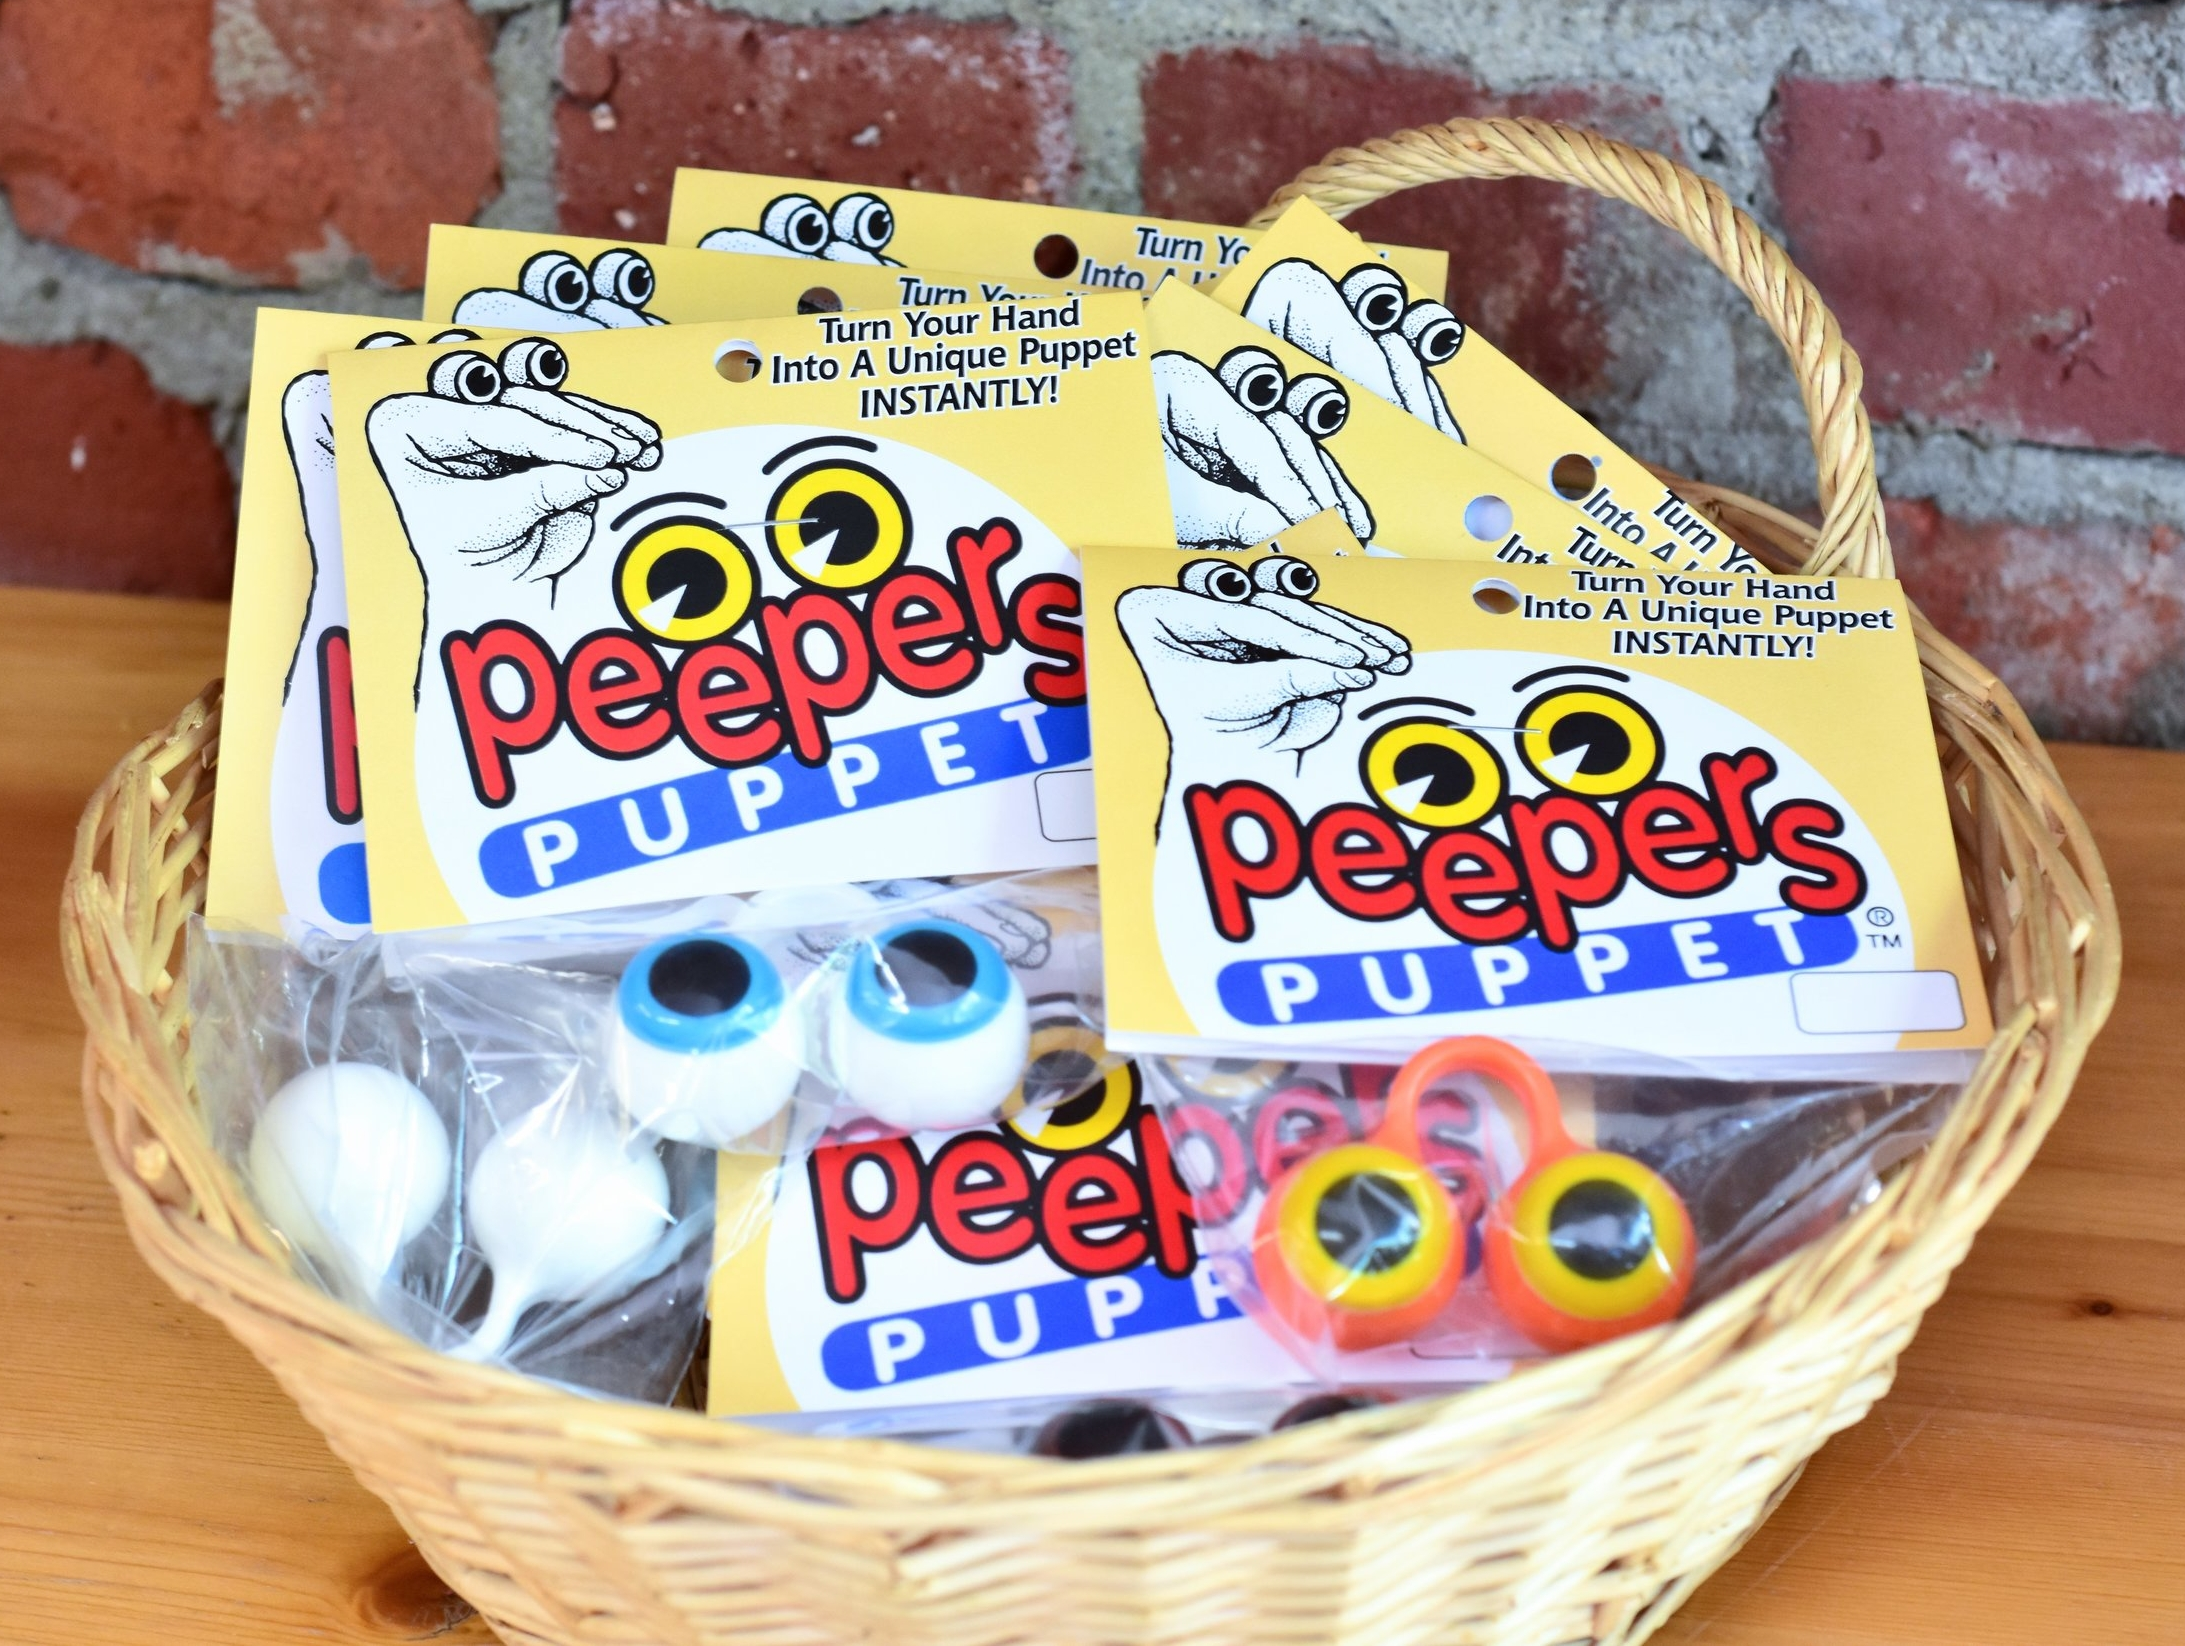 Peepers Puppets